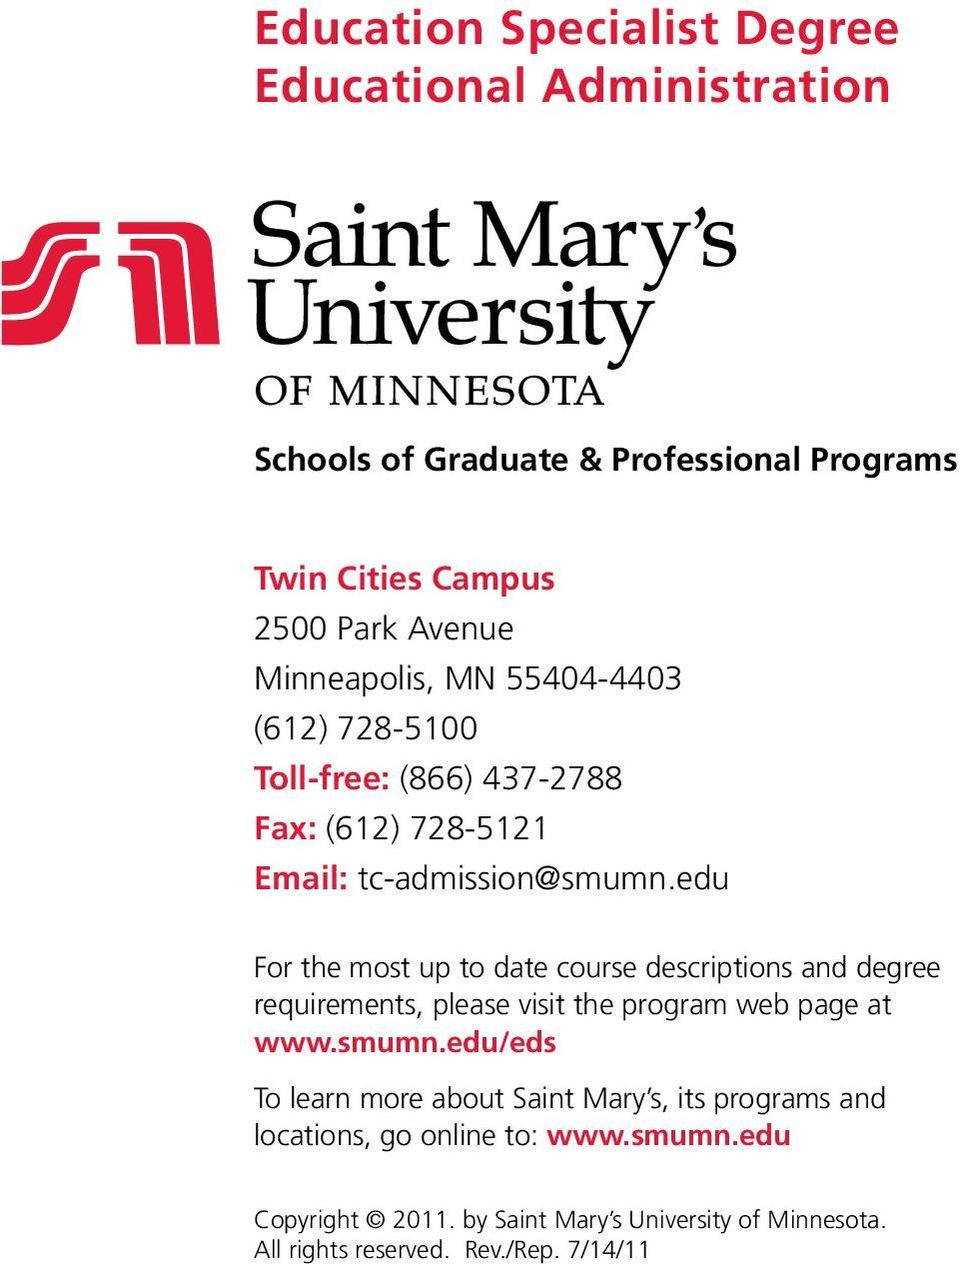 edu For the most up to date course descriptions and degree requirements, please visit the program web page at www.smumn.